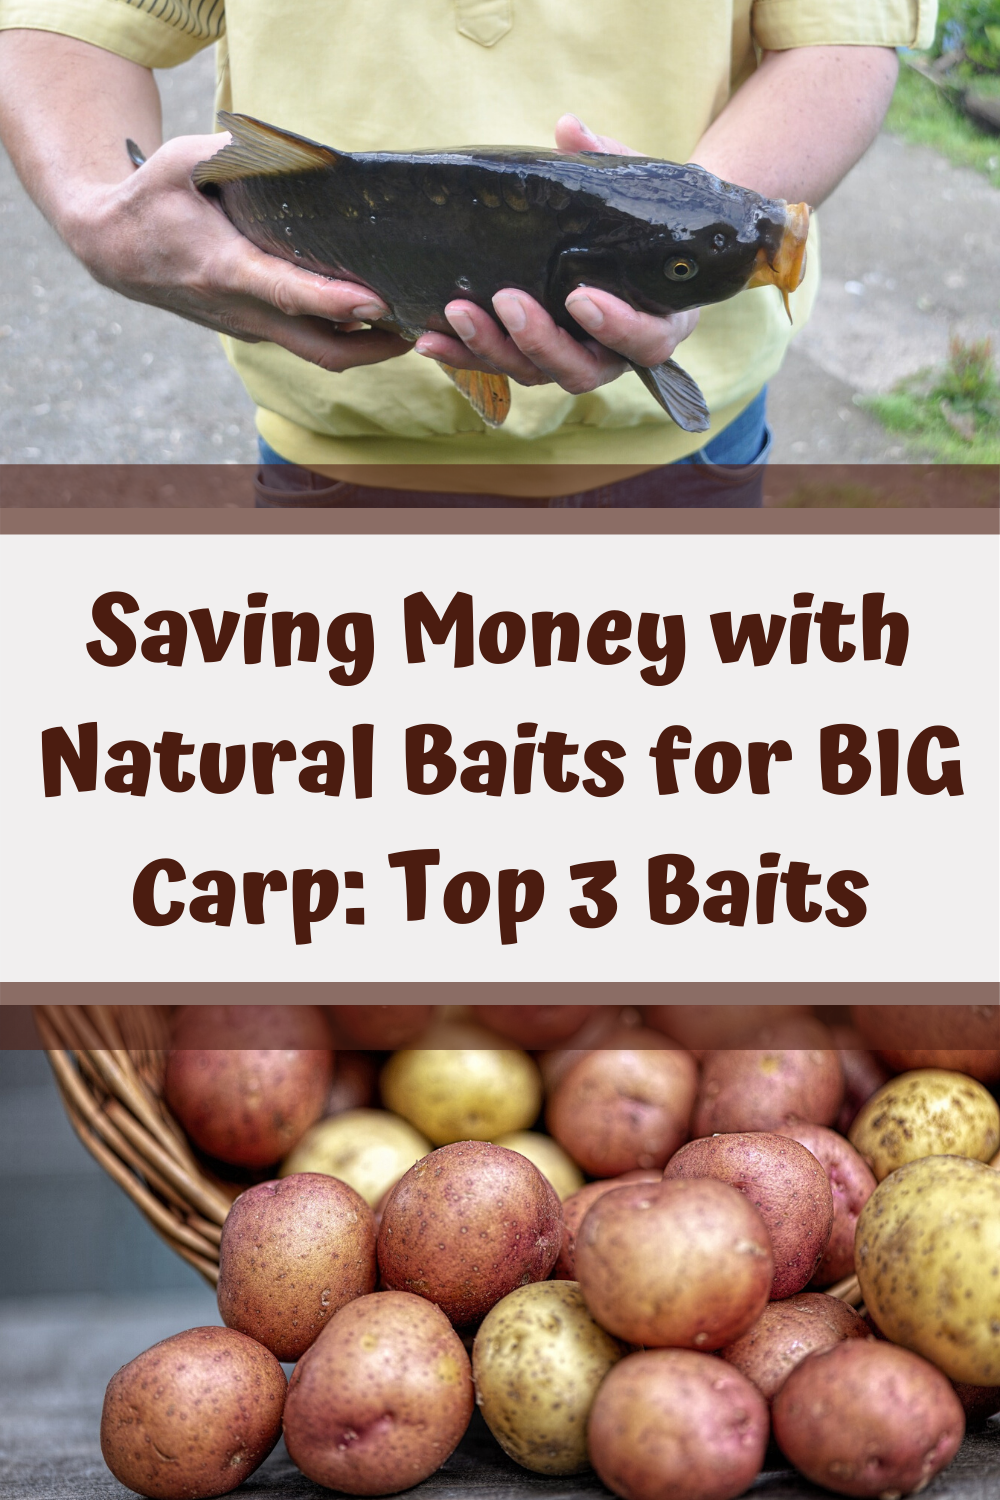 MOST CARP BAIT is EXPENSIVE! But, CARP FISHING is AMAZING. Hence, there needs to be a way to FISH FOR CARP IN A CHEAP MANNER. That's what this article is for! It'll show you how